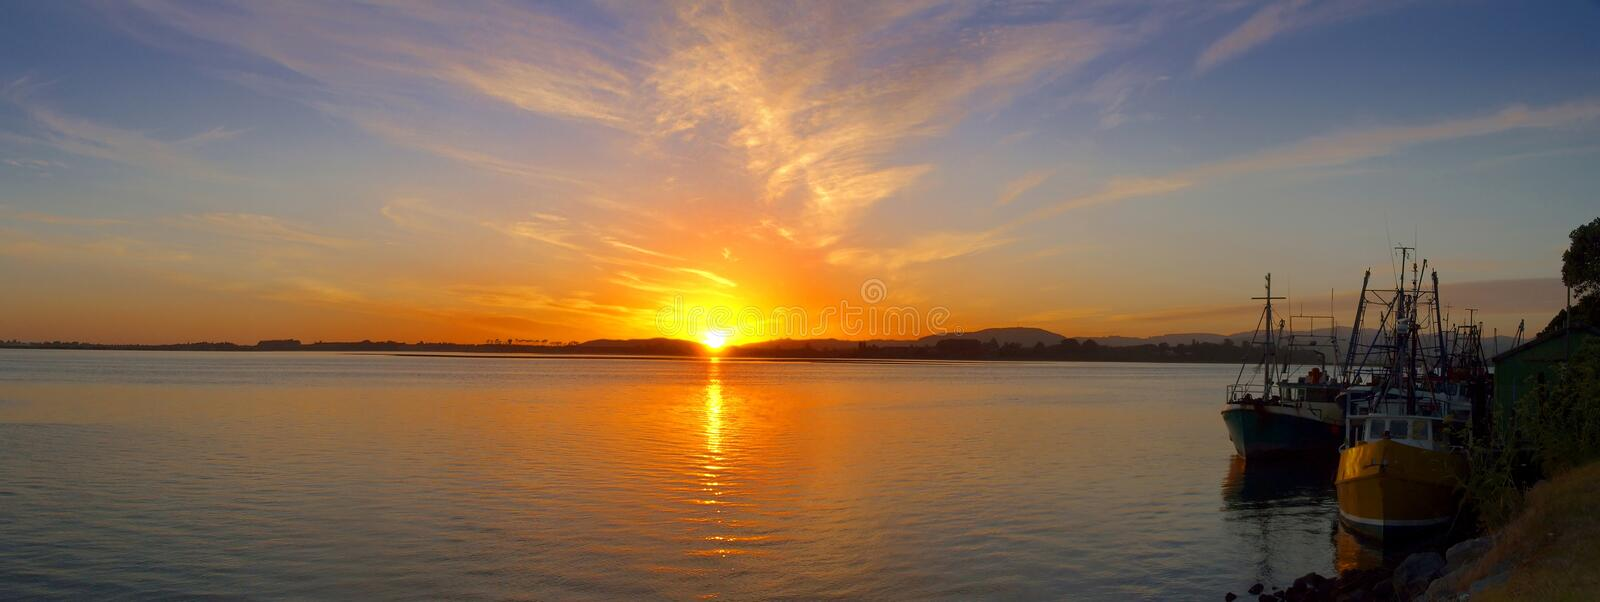 Download Early Morning - Sunrise Over Fishing Harbor Stock Image - Image: 615143